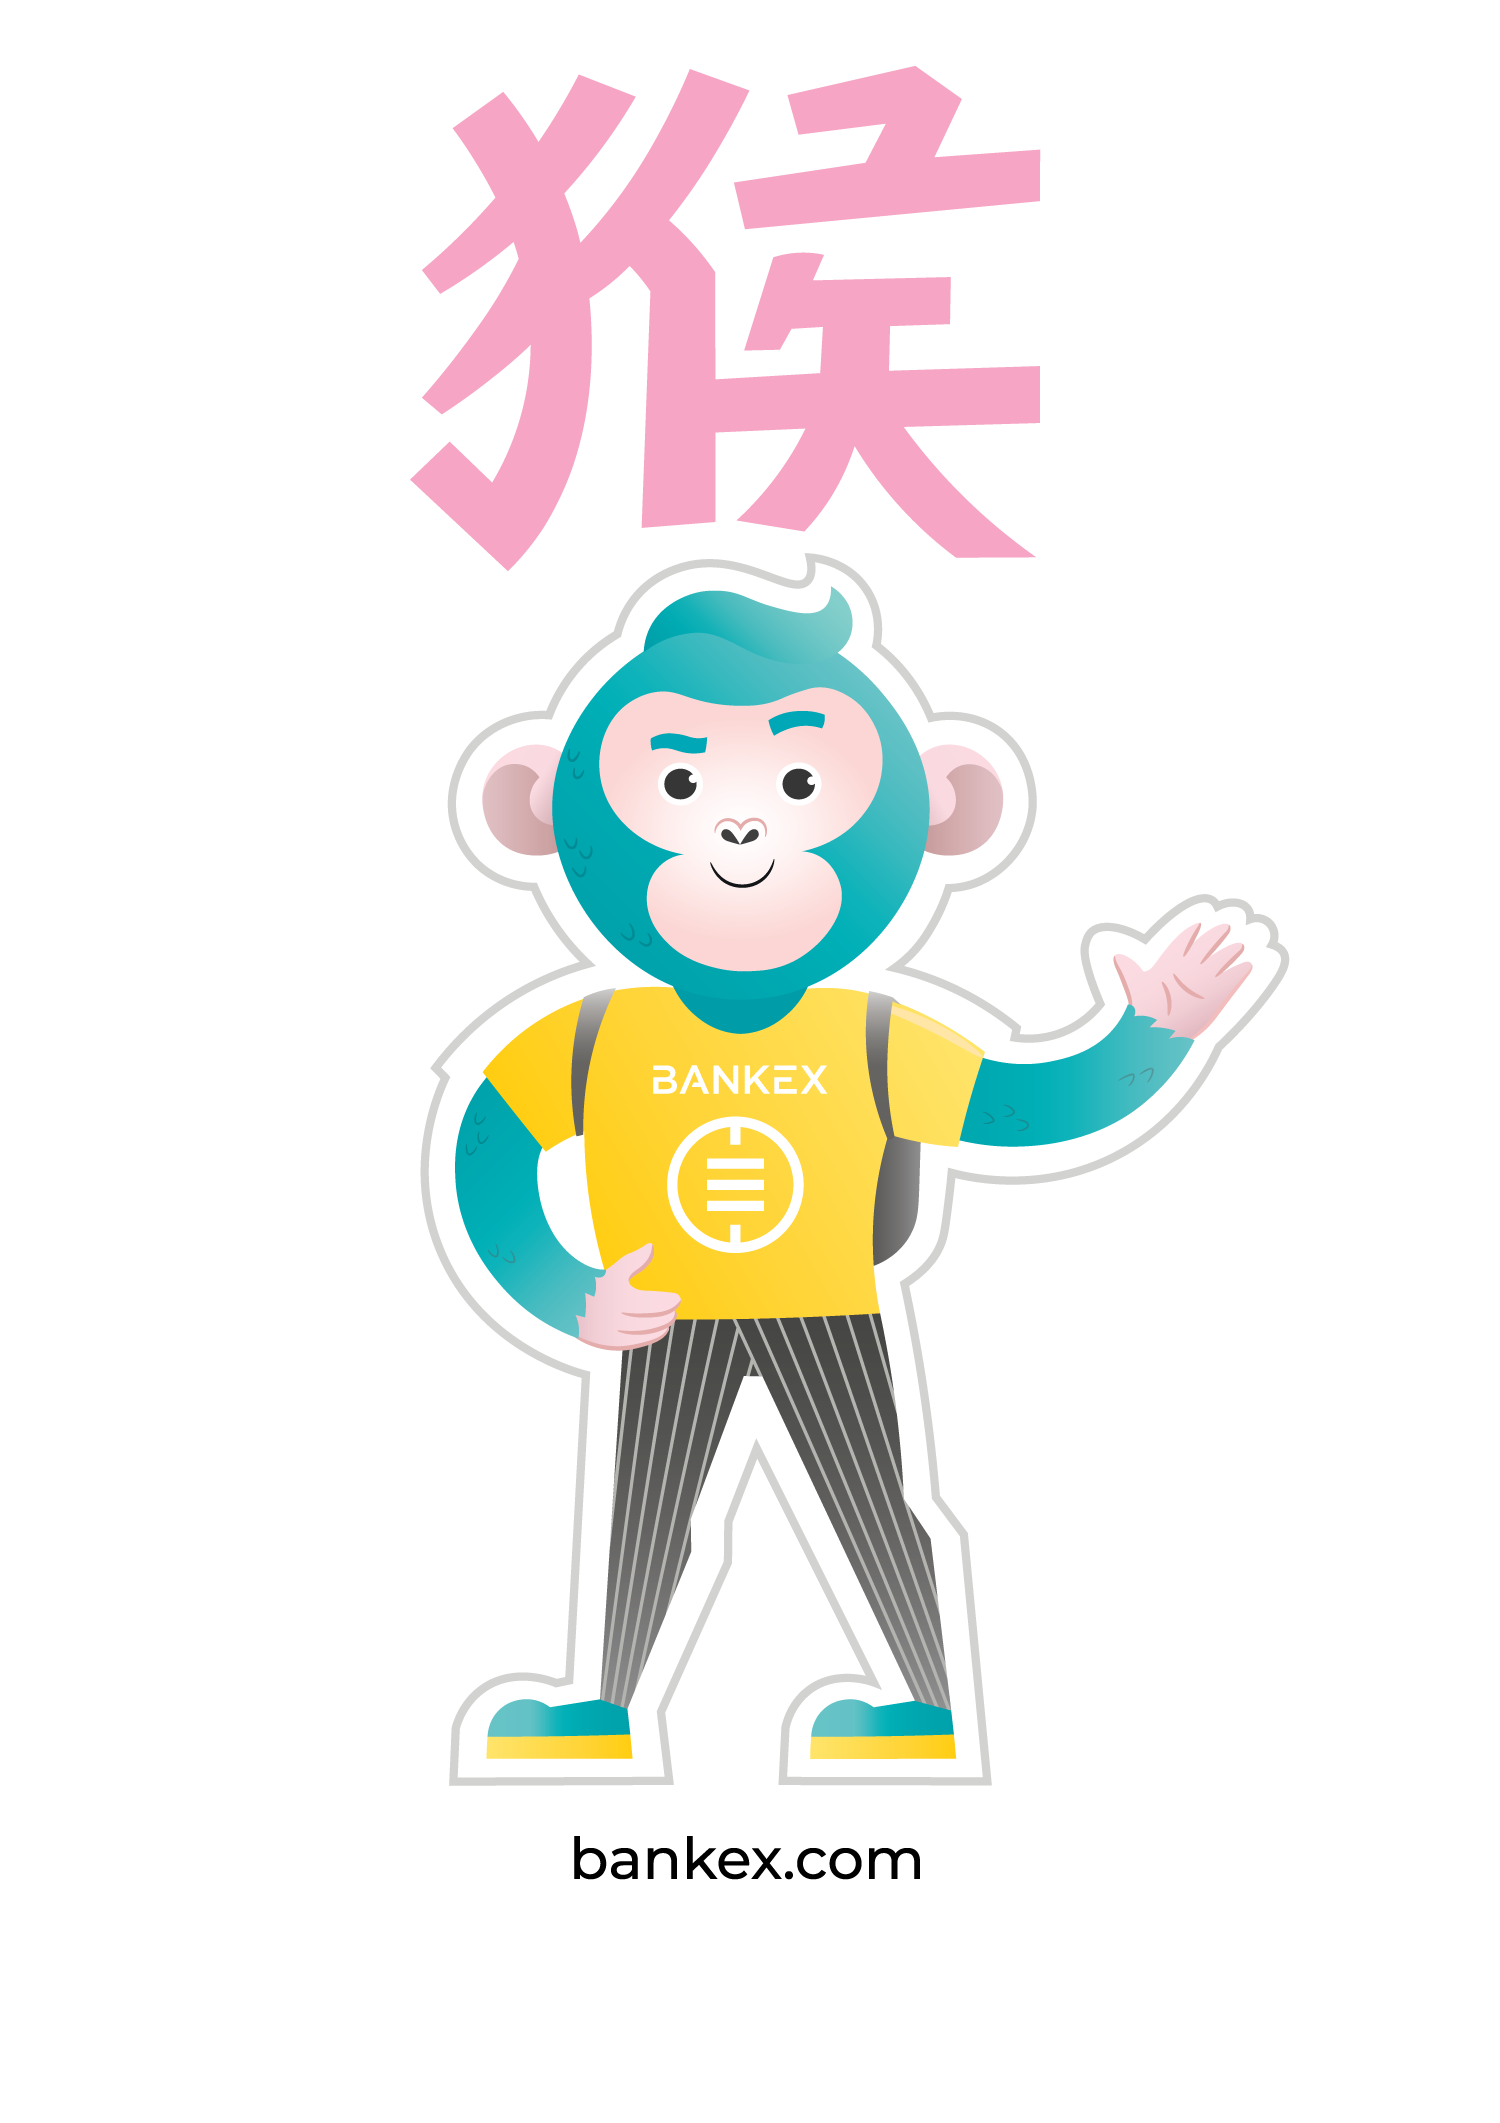 monkeynew.png